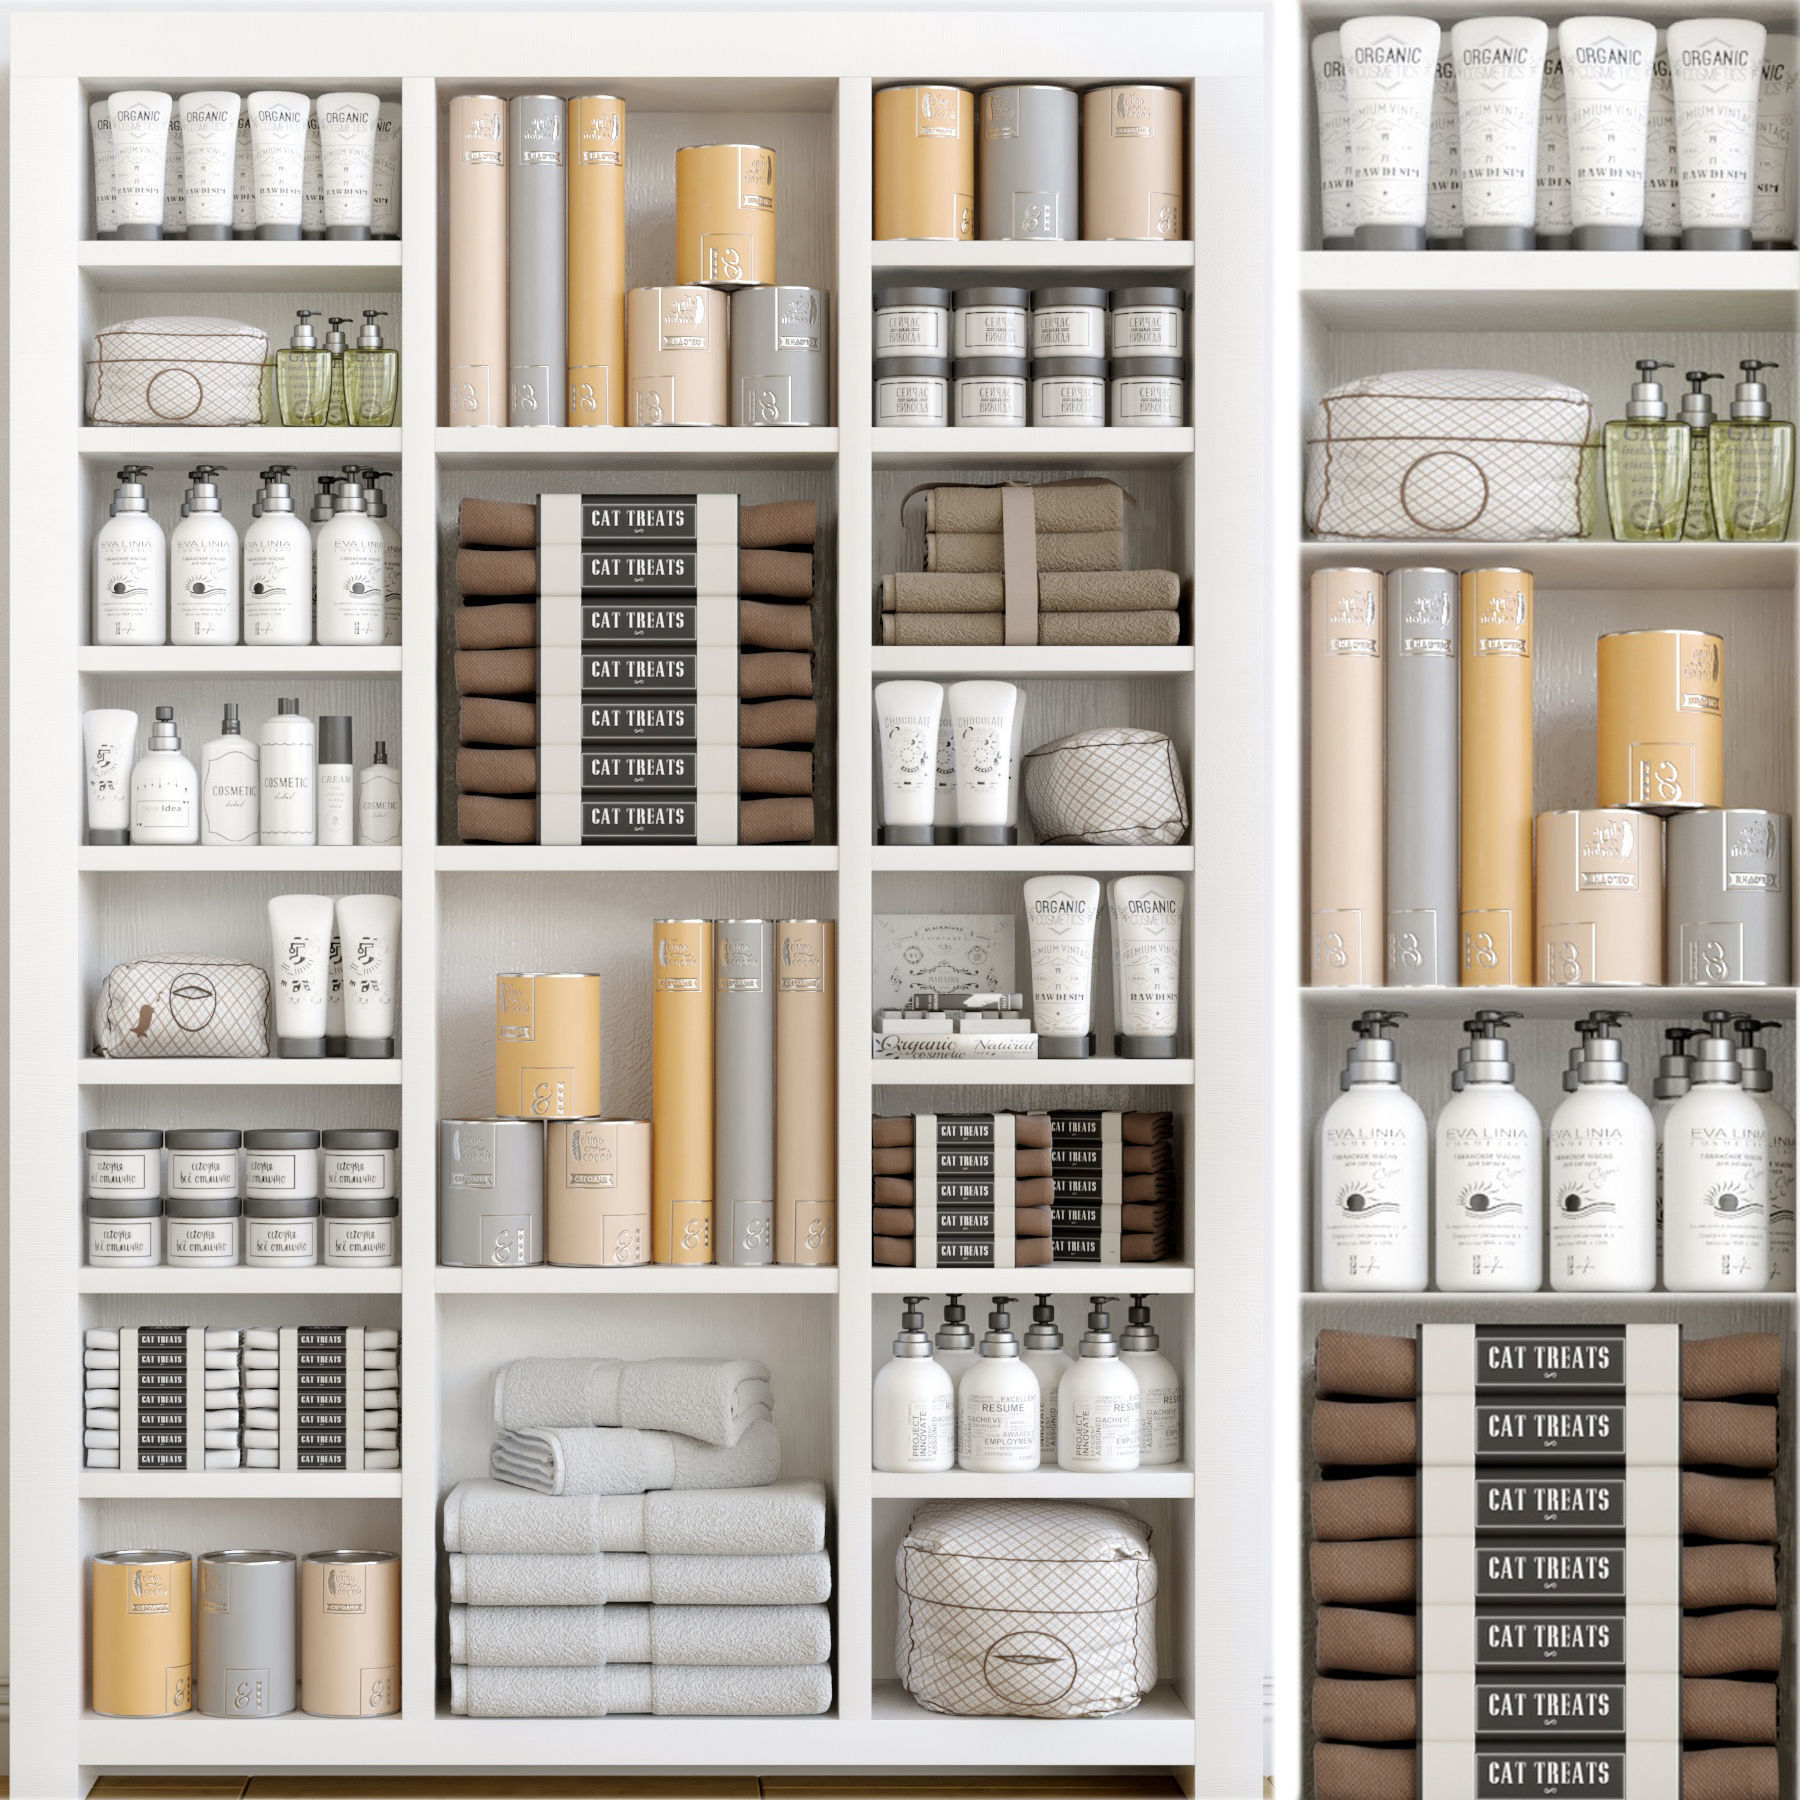 Cabinet with cosmetics